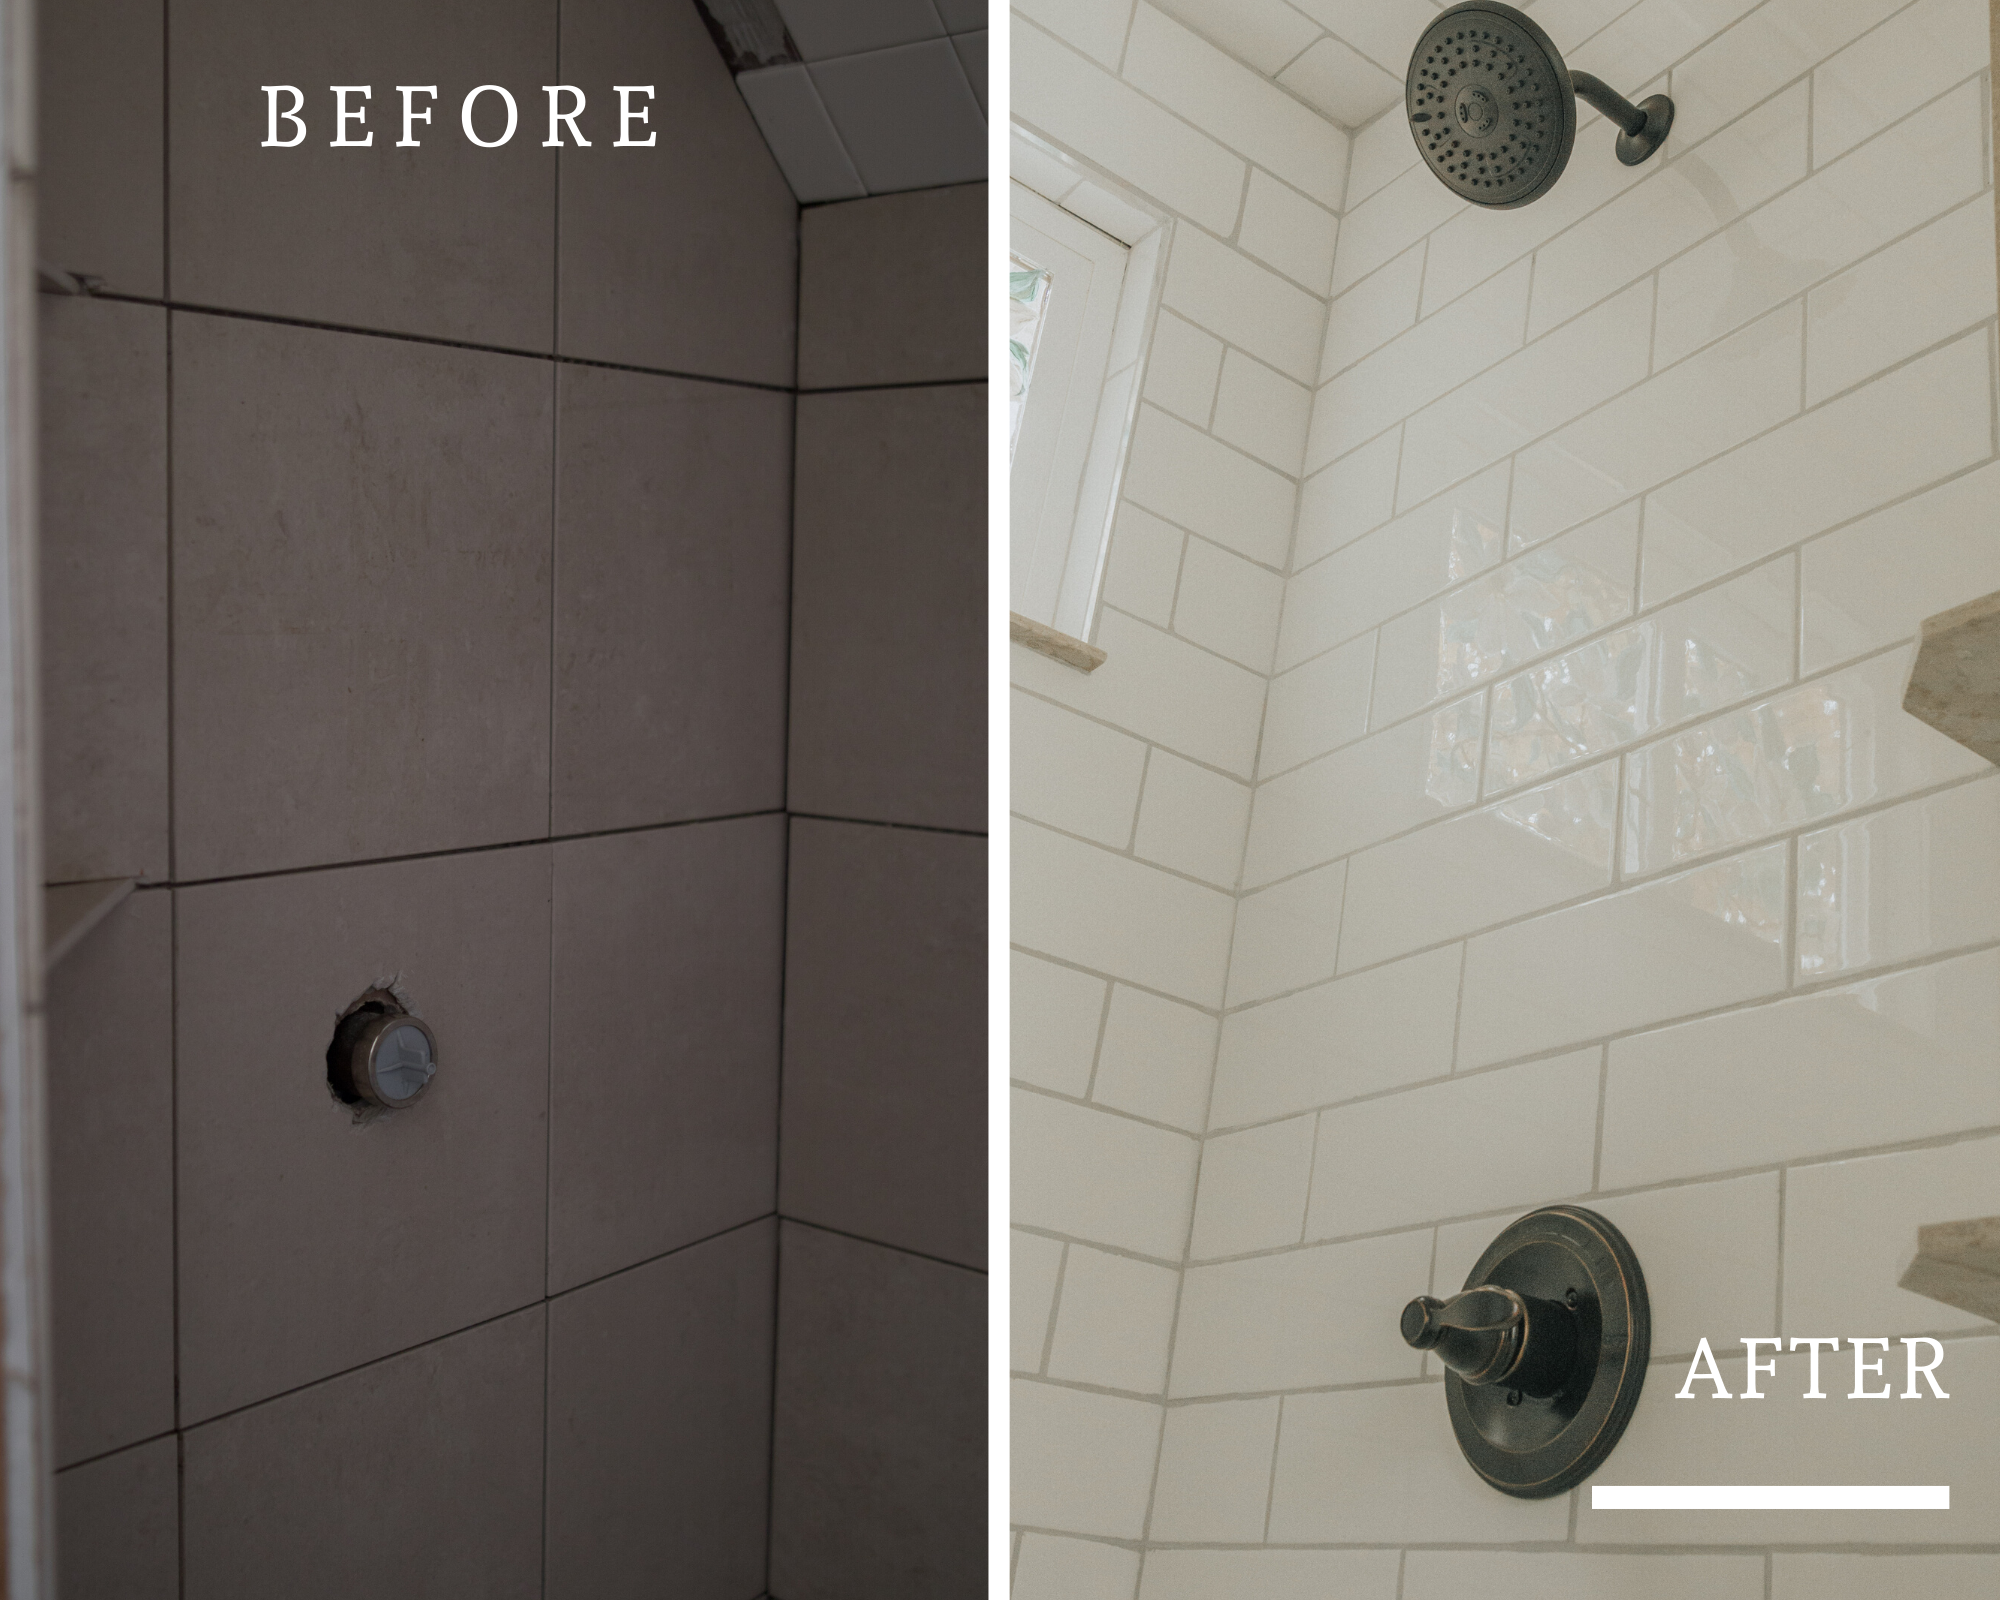 Before and After Mid Century Bathroom Renovation | Subway tile